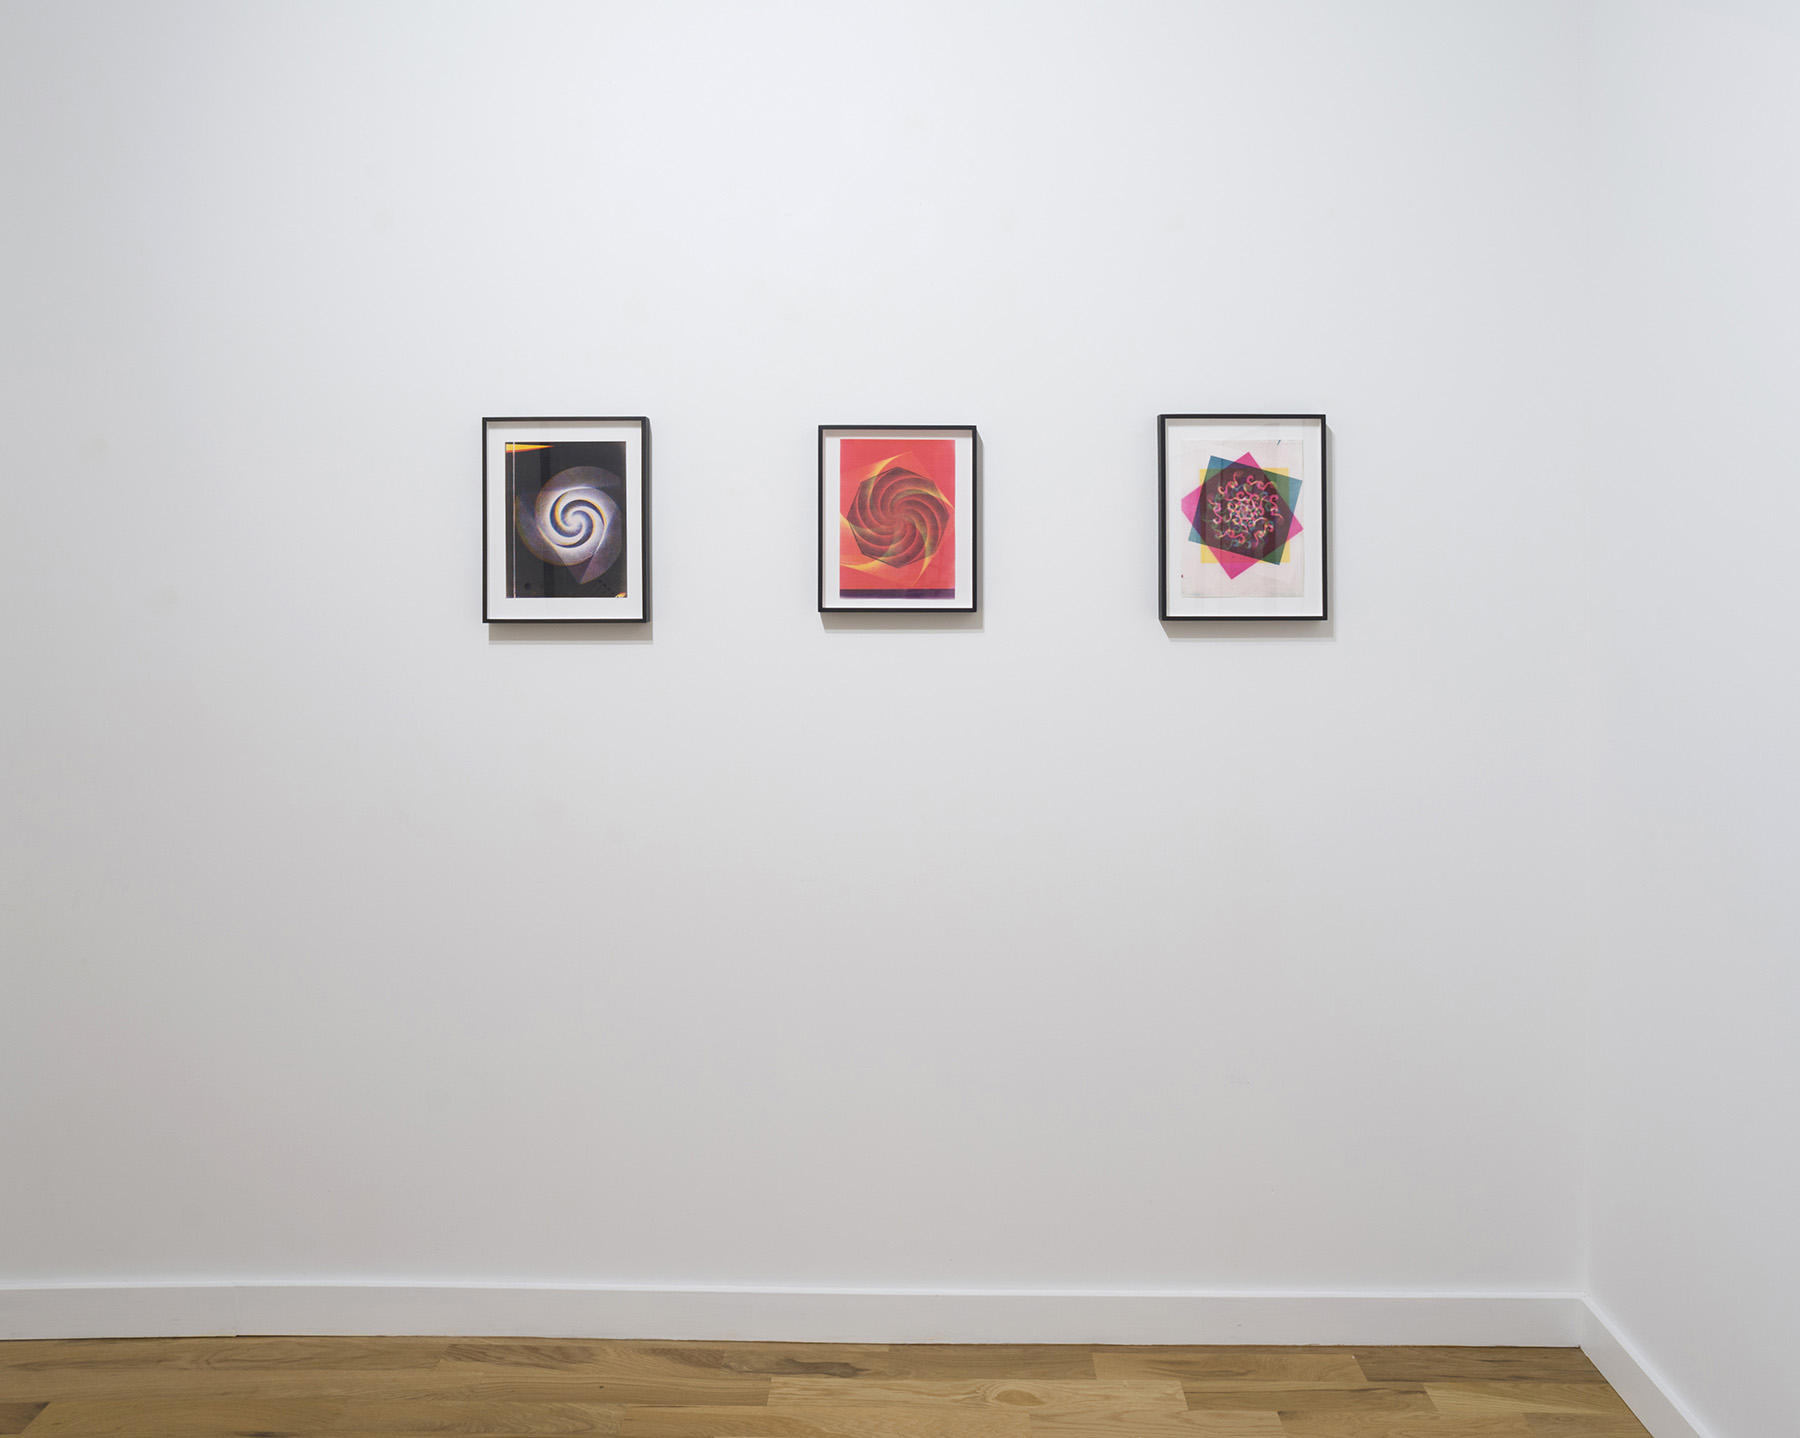 VanDerBeek_Installation view at DOCUMENT05_Web.jpg